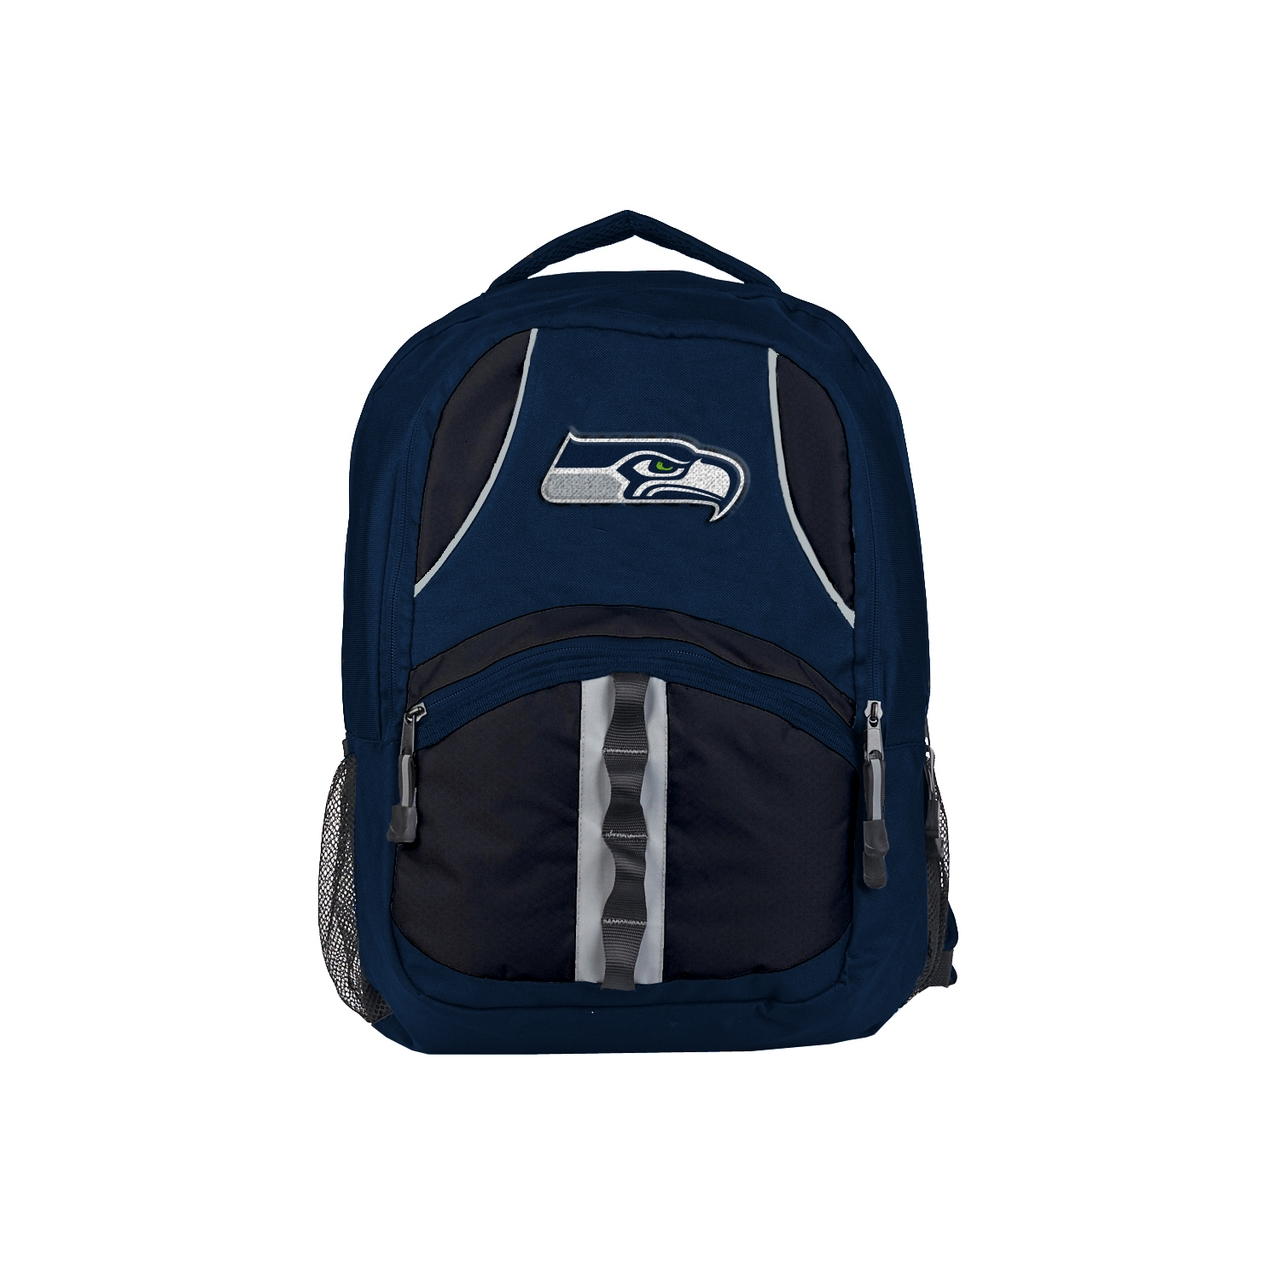 Football Nfl Football Seattle Seahawks Tumblers And Pint Glasses - 8791890650 - Seattle Seahawks Backpack Captain Style Navy And Black 8791890650